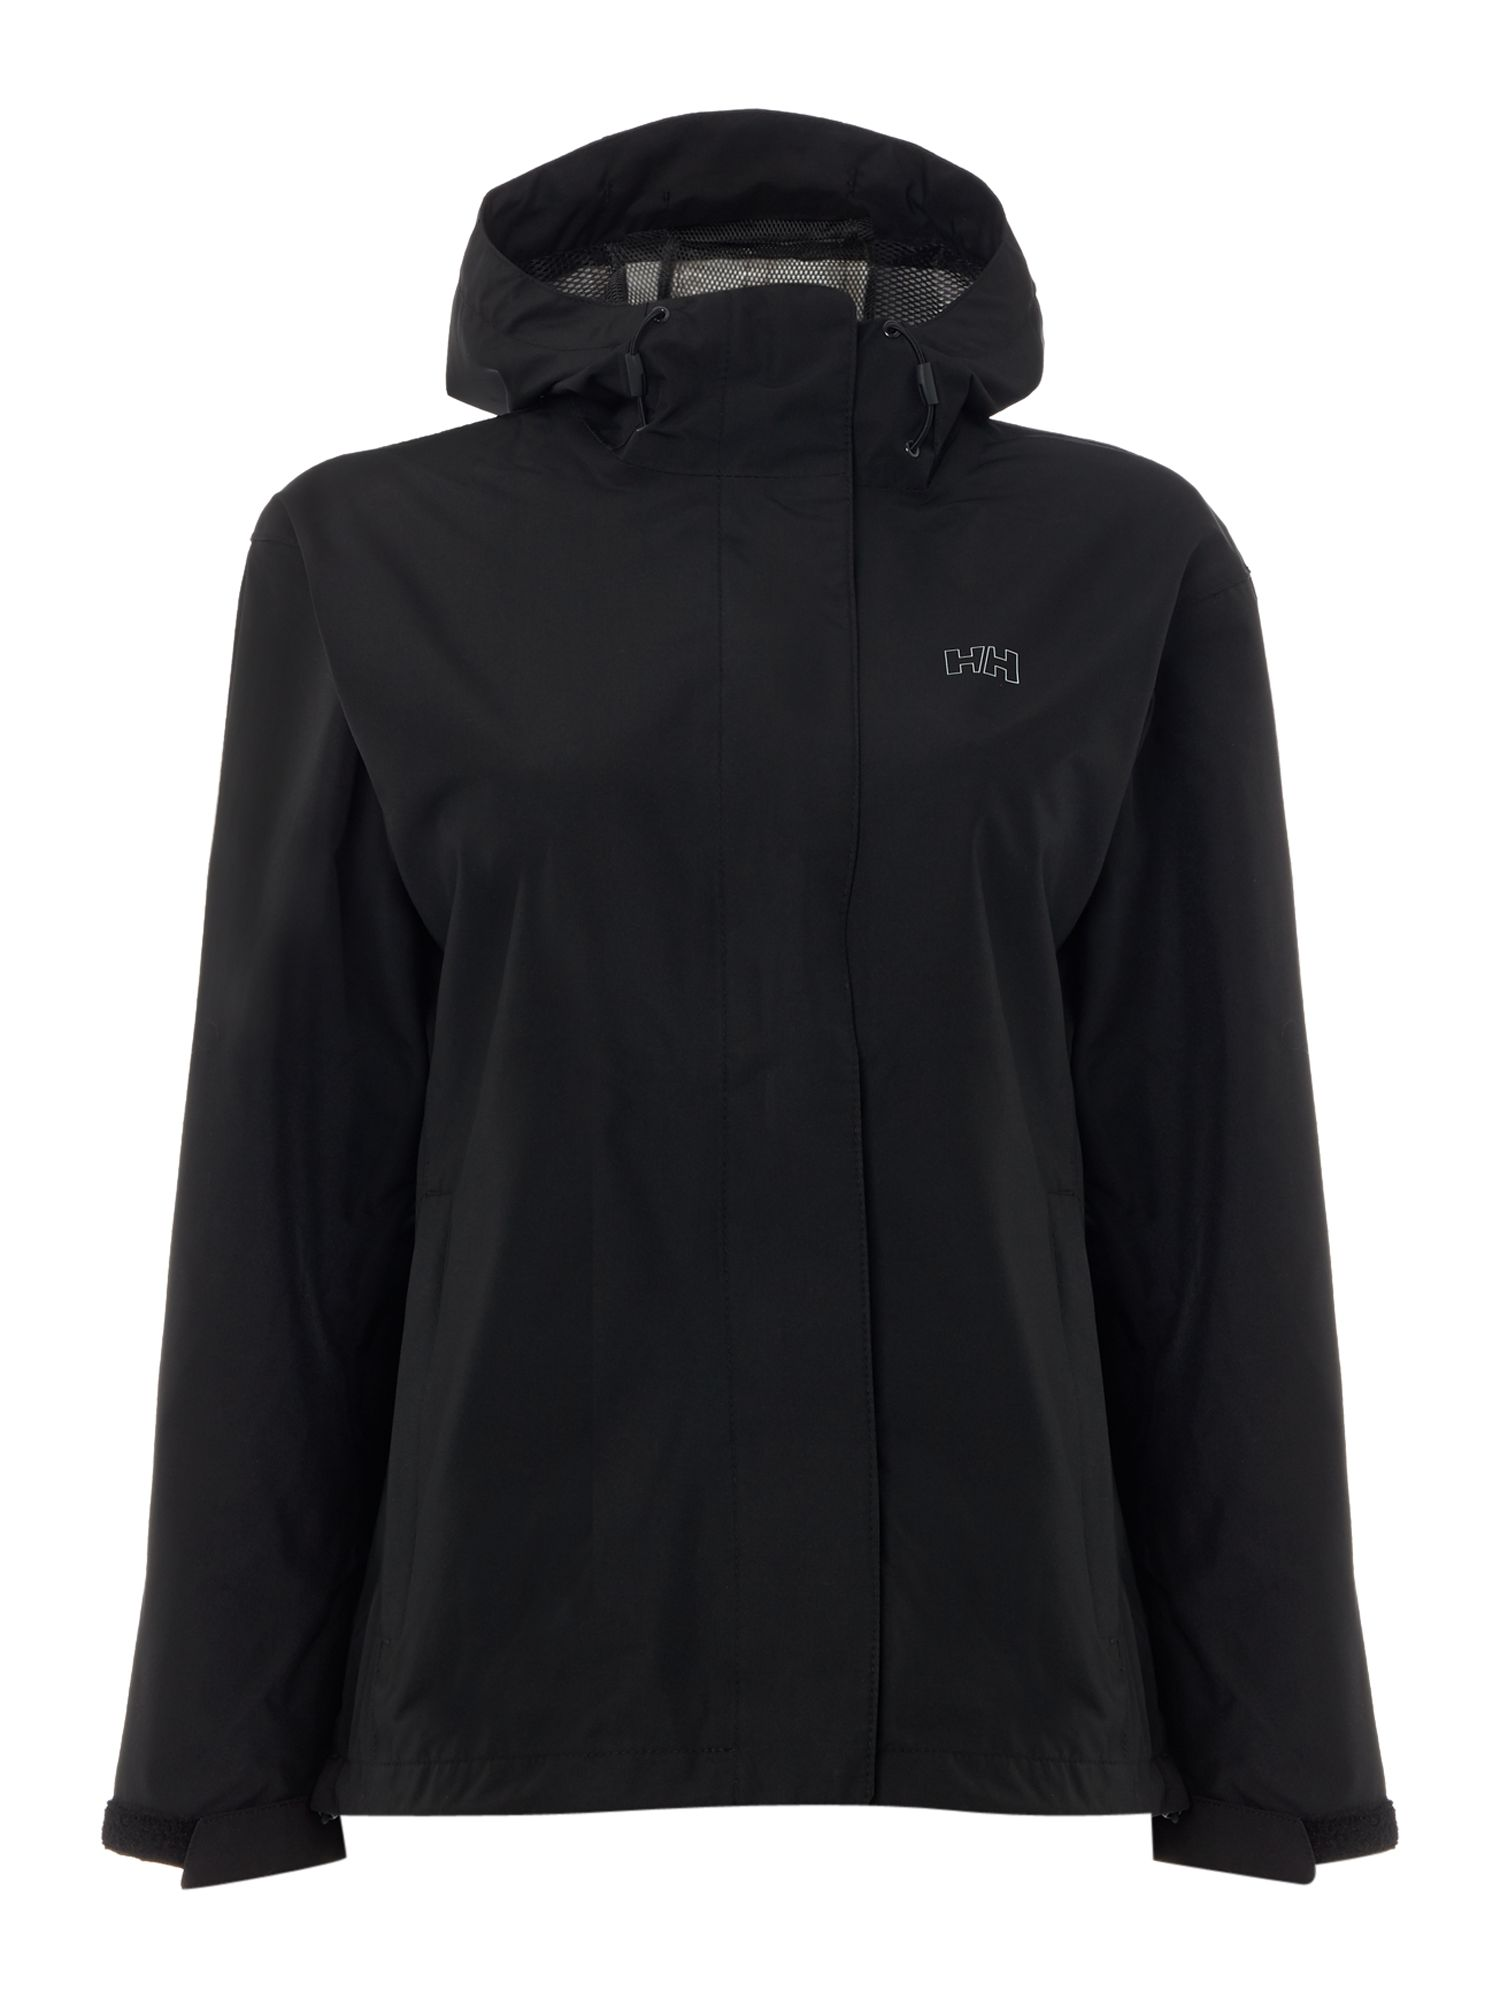 Helly Hansen Seven J Jacket, Black